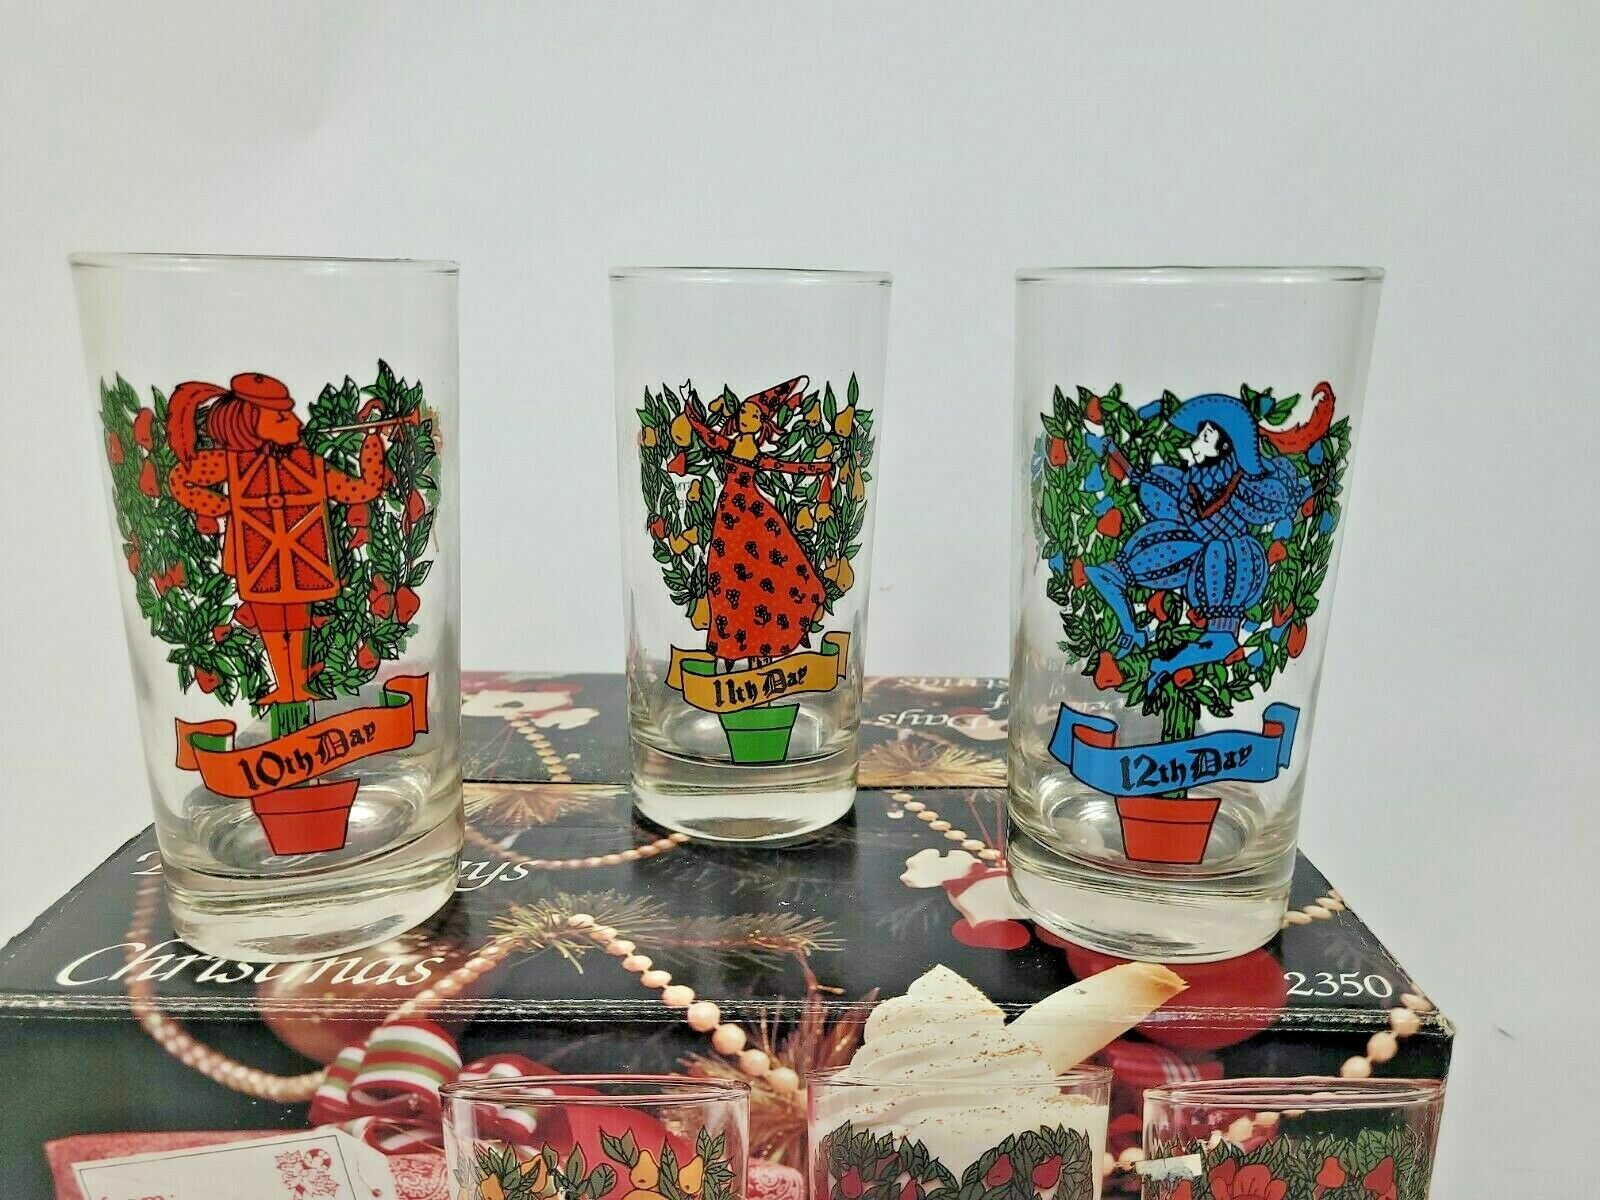 Twelve Days Of Christmas 5th Day Indiana 2350 Drinking Glass Tumbler 12 Oz For Sale Online Ebay